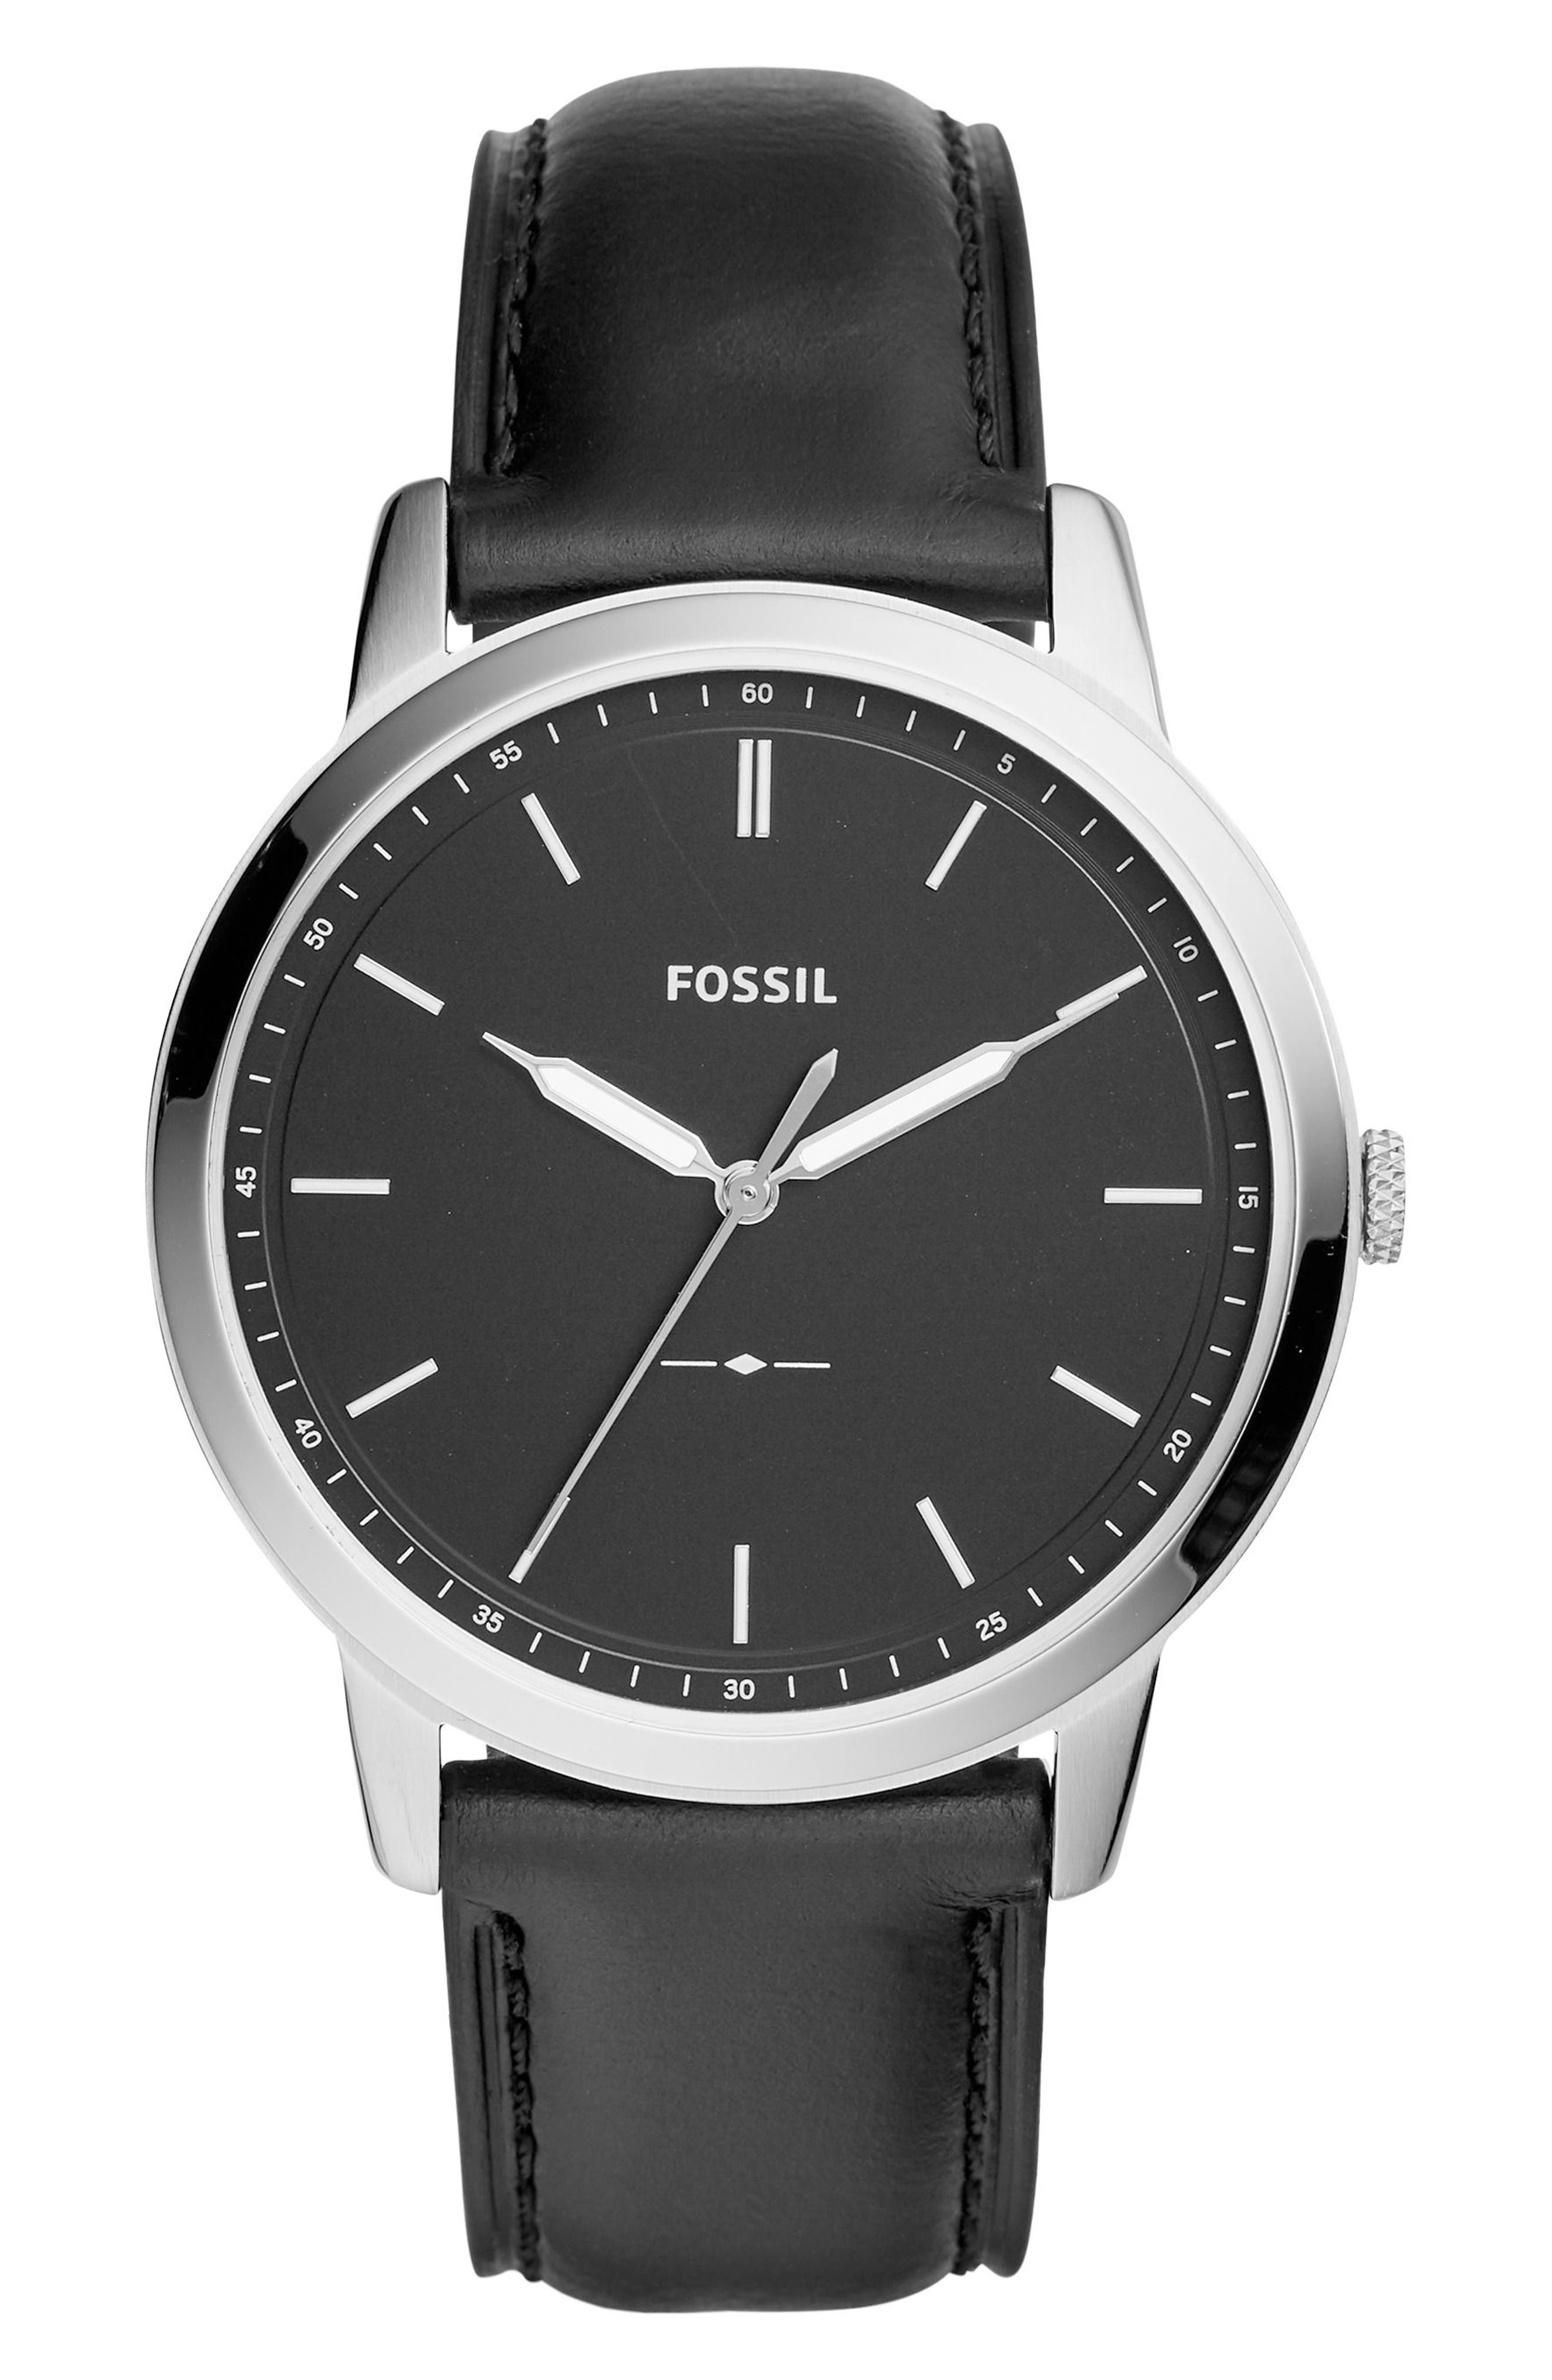 Main Image - Fossil The Minimalist Leather Strap Watch, 44mm